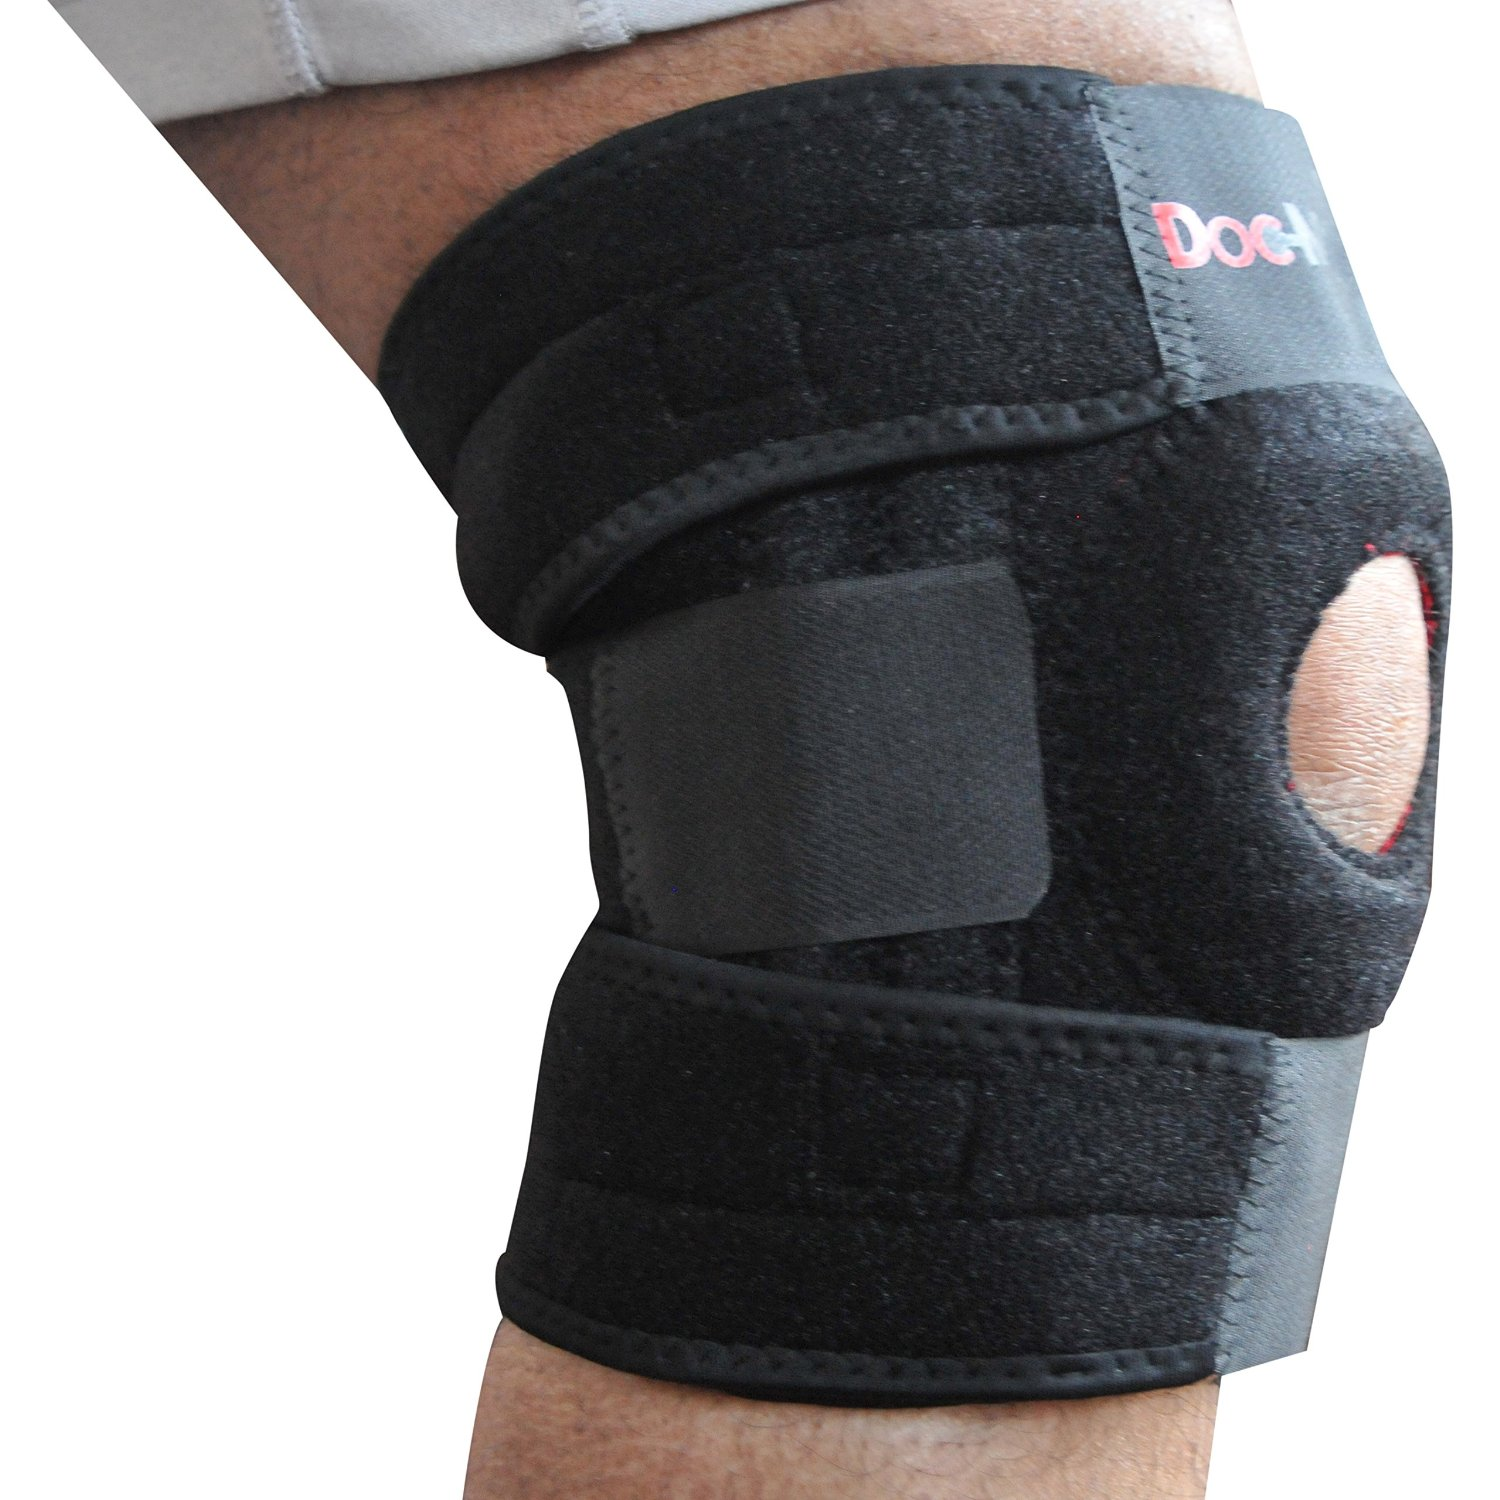 823febed7c Get Quotations · Premium Knee Brace Dual Side Stabilizer Support For ACL  LCL MCL Sports Exercise Meniscus Tear Injury